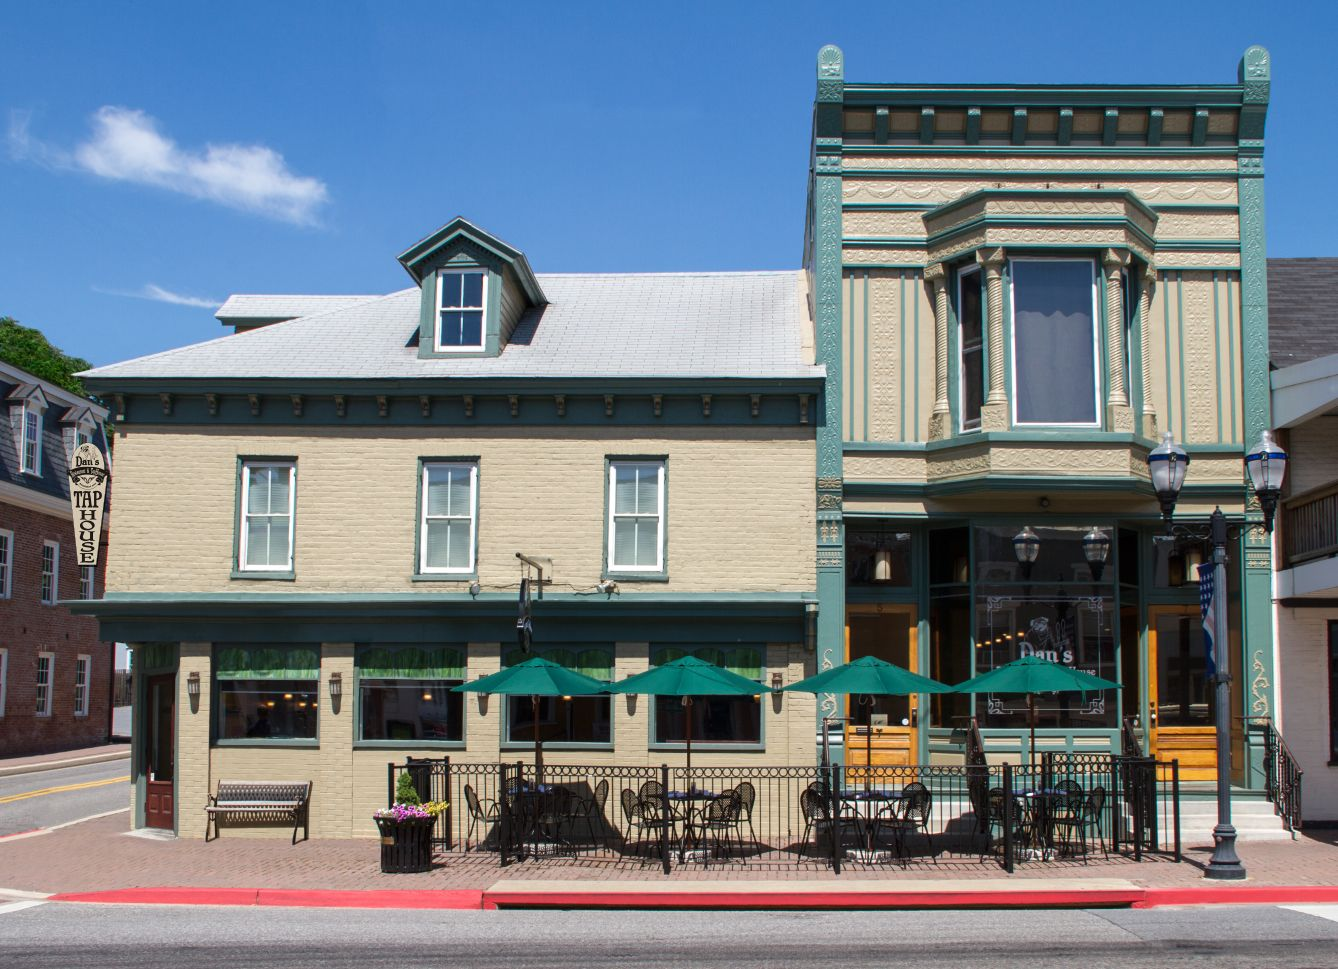 Dan S Restaurant And Tap House In Boonsboro Maryland Places To Go Local Brewery Places To Visit